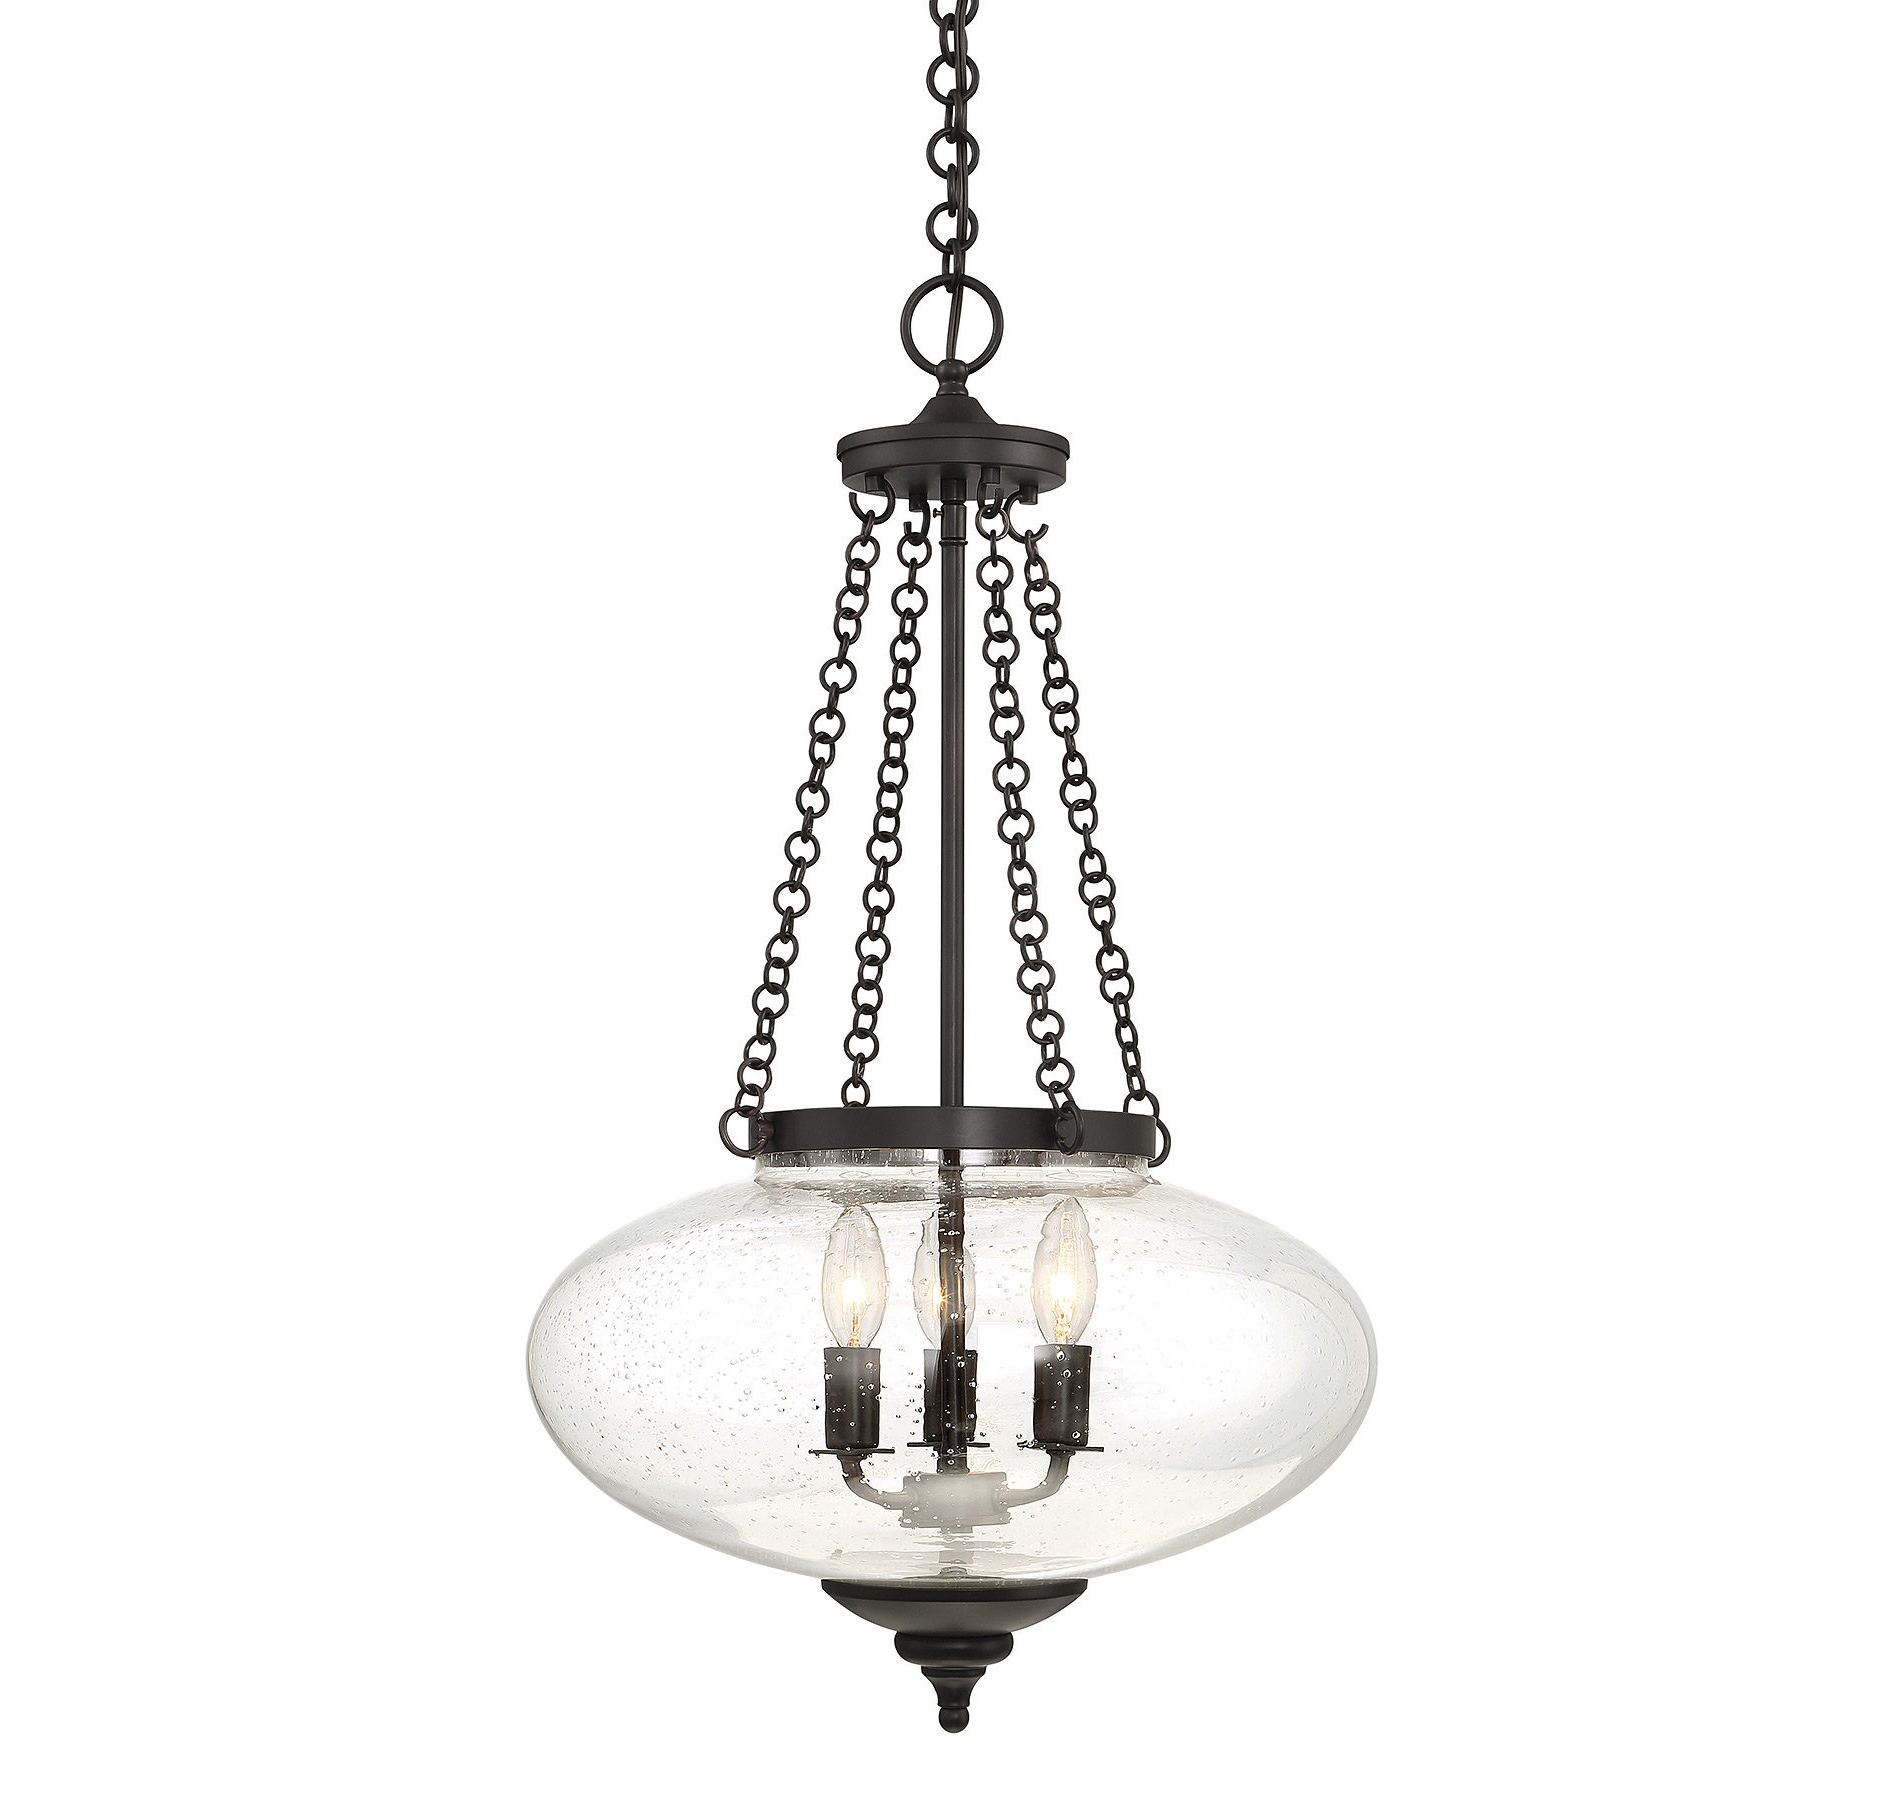 Best And Newest Spokane 1 Light Single Urn Pendants Within Fortunat 3 Light Urn Pendant (View 3 of 25)